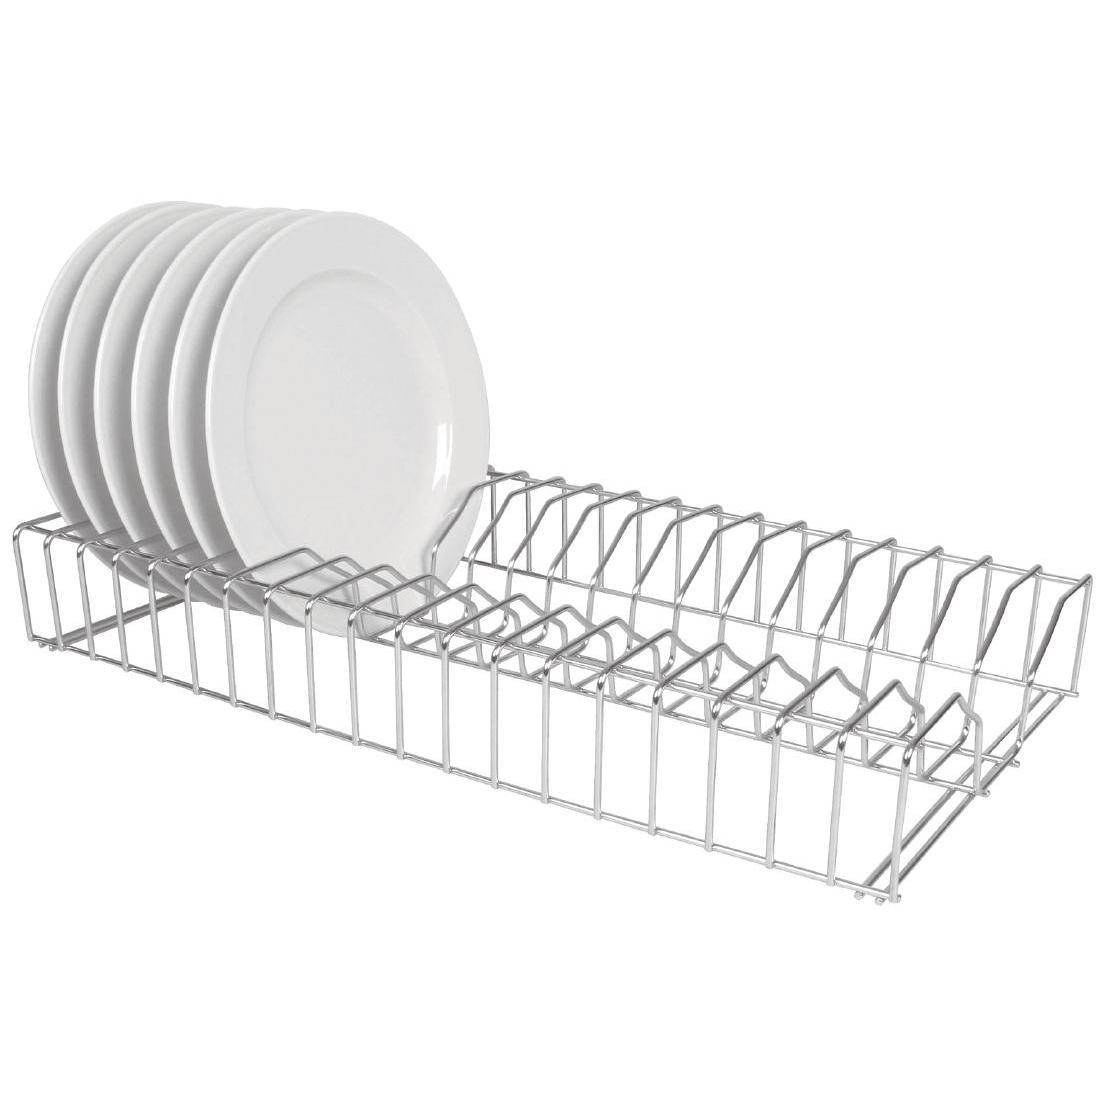 Vogue Stainless Steel Plate Racks - L440